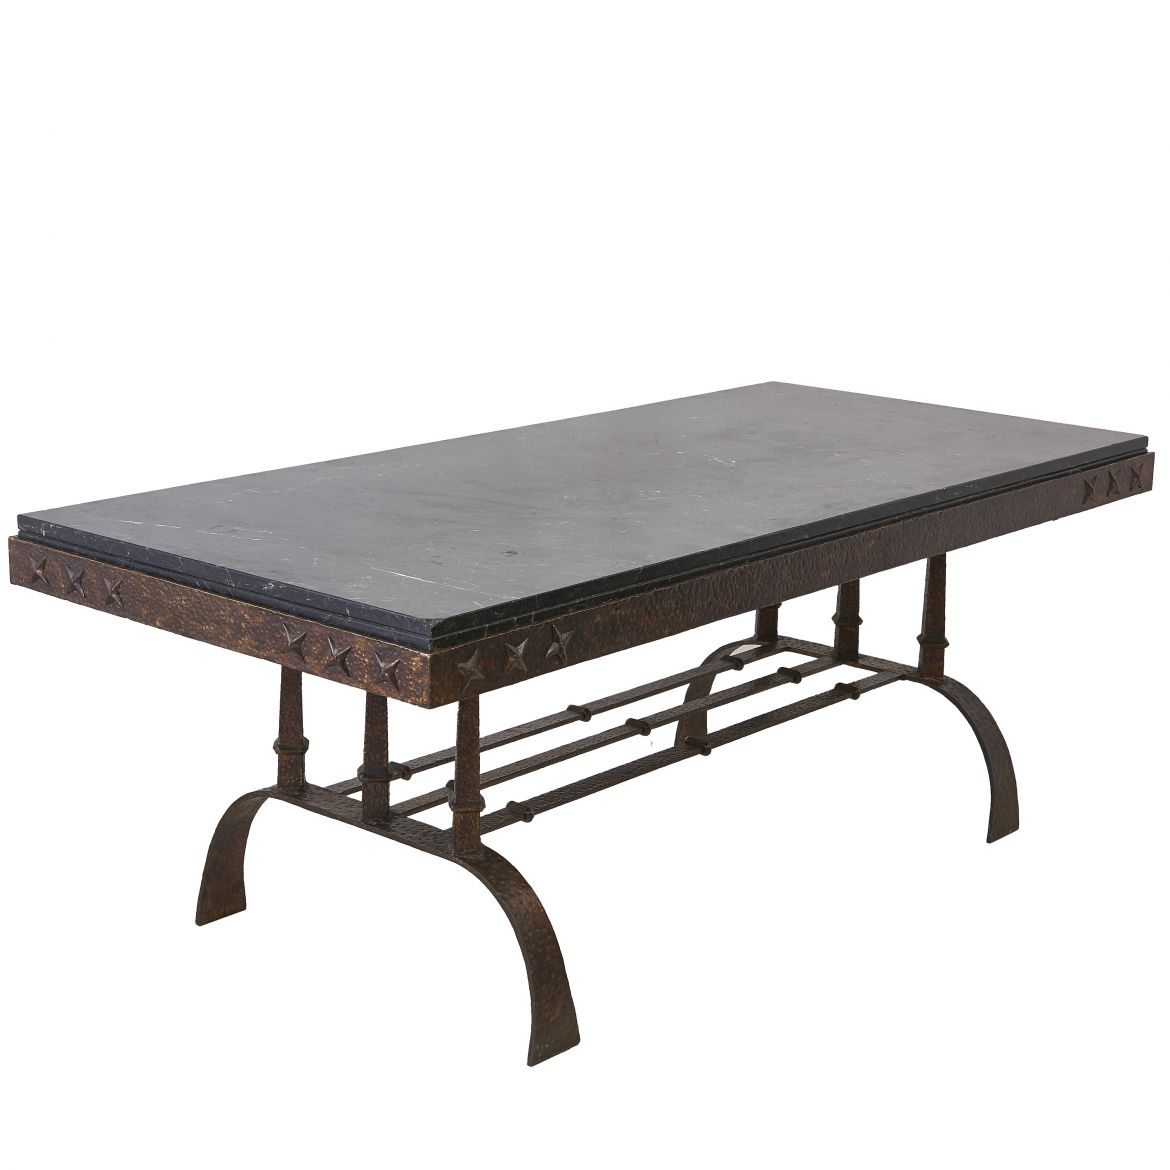 Large Iron and Marble Dining Table